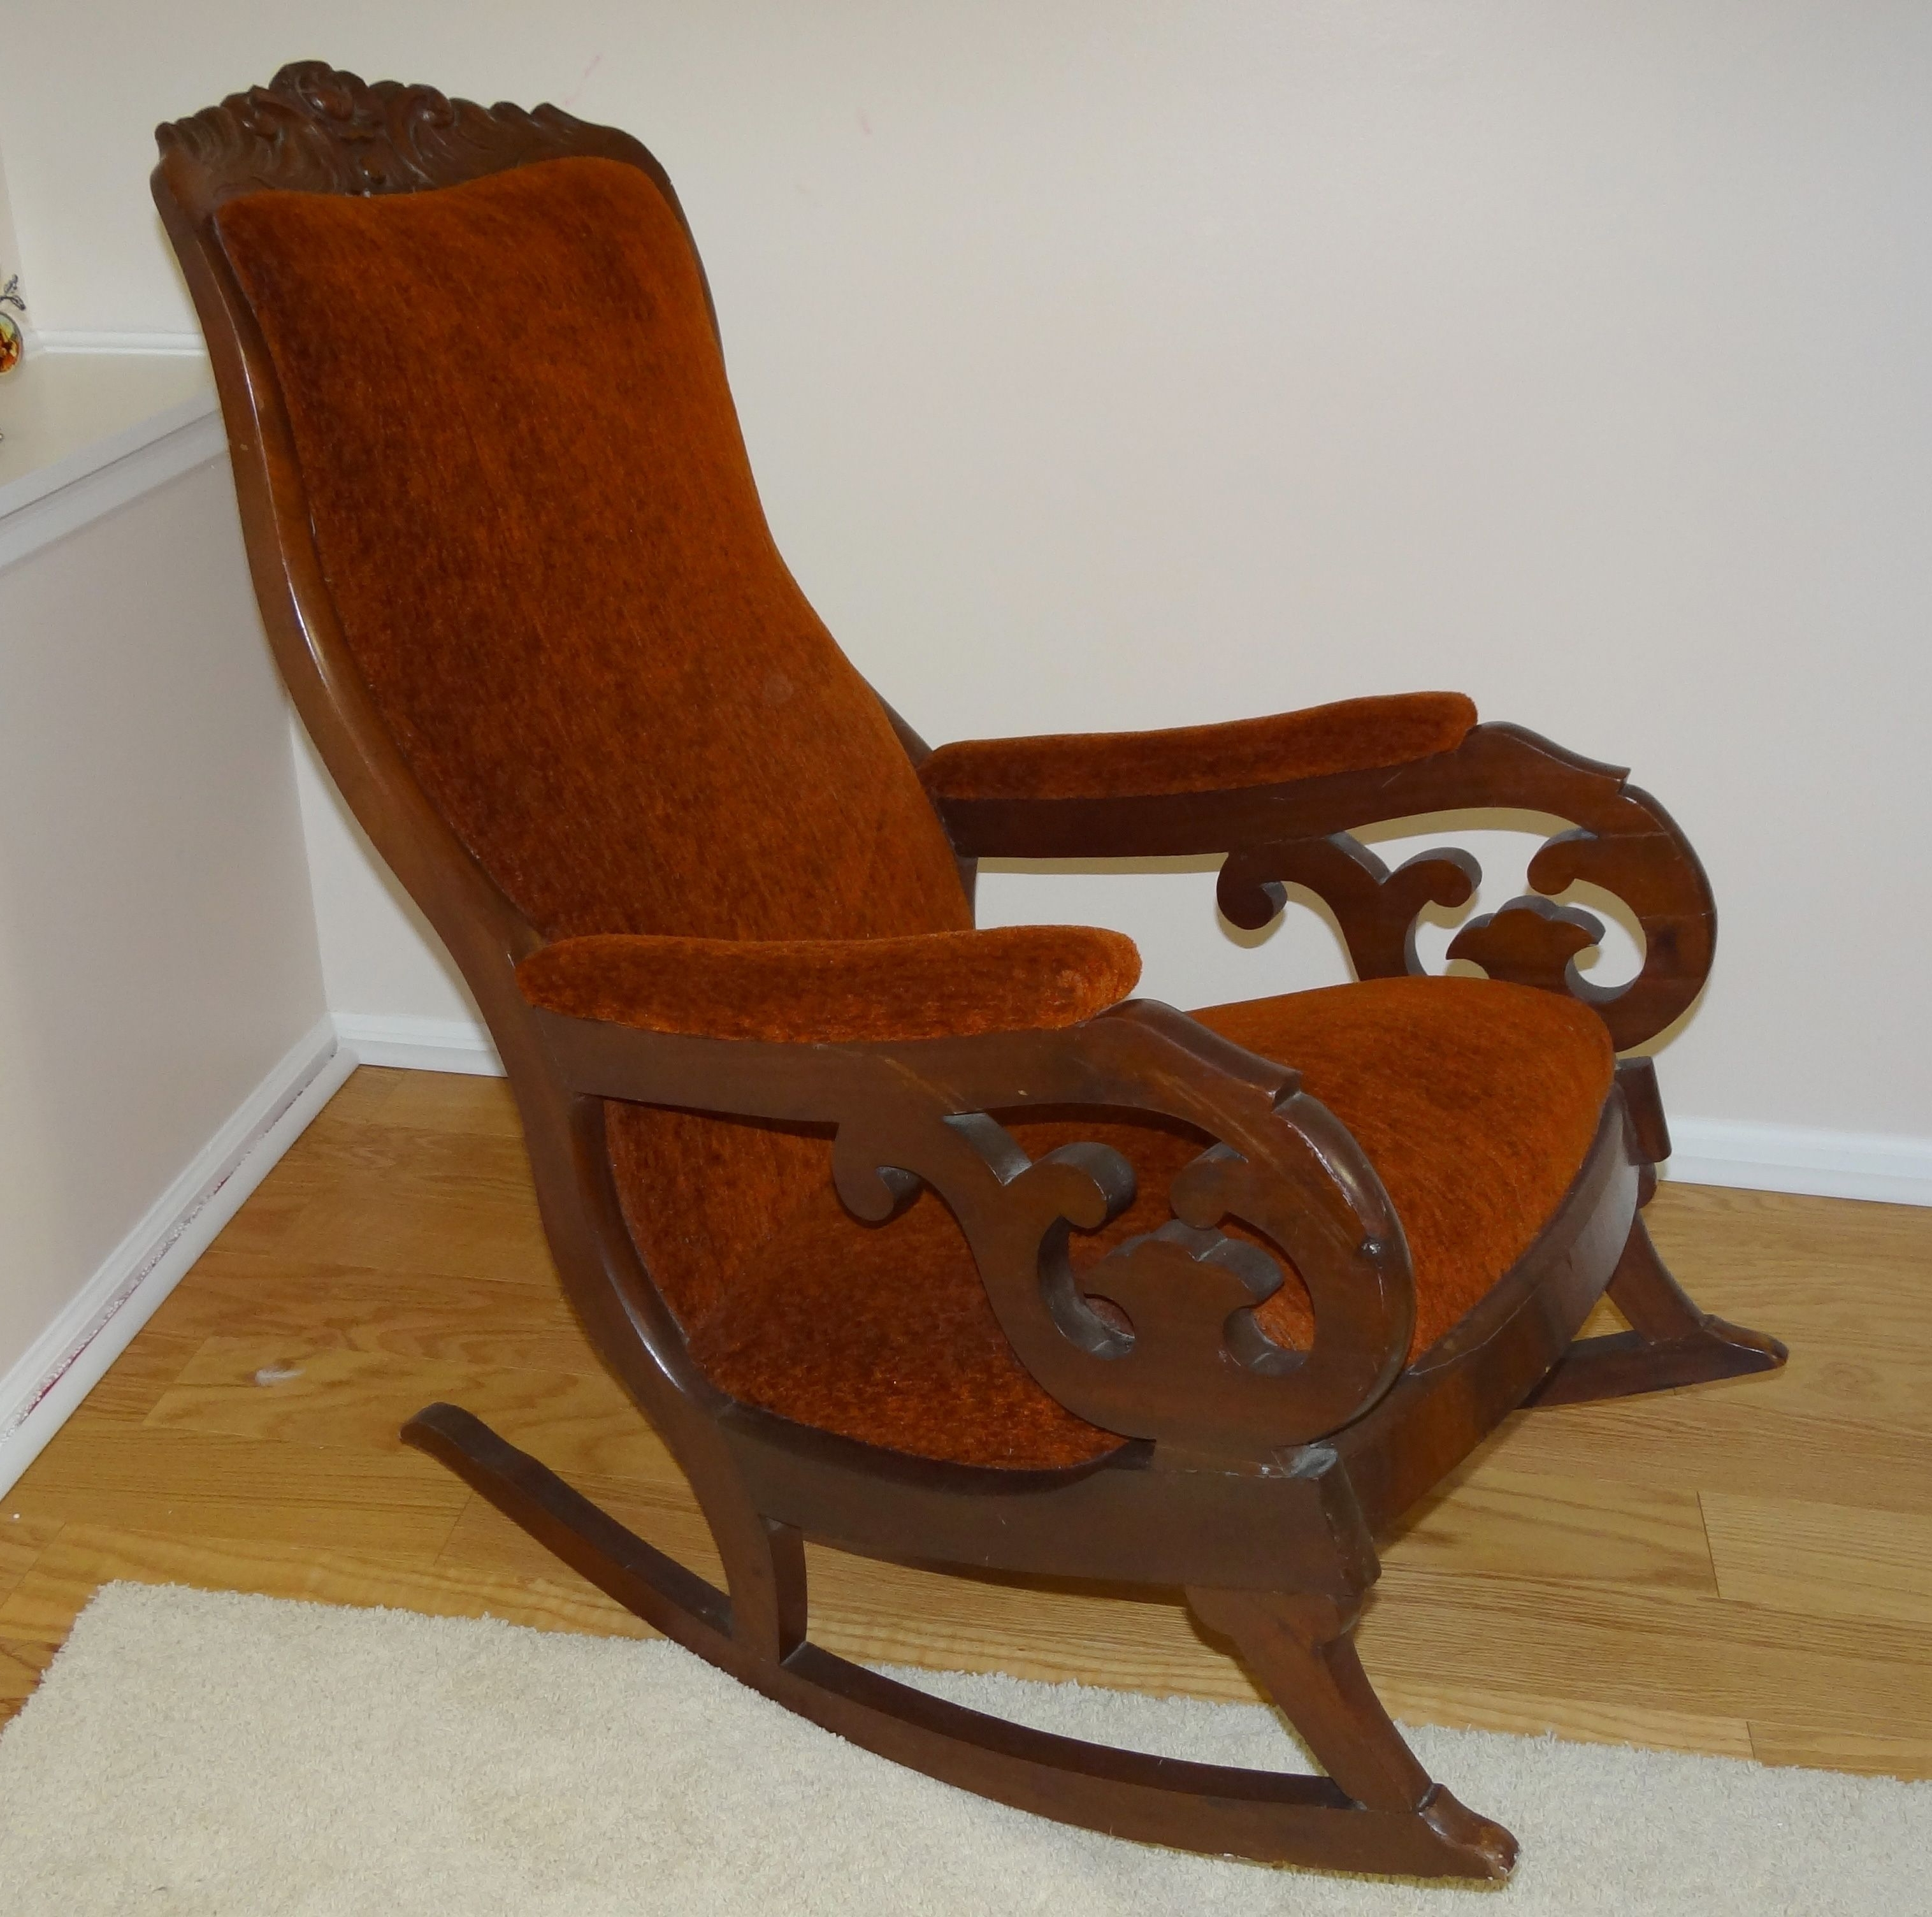 Find Great Deals On Ebay For Vintage Rocking Chair In Antique Chairs For Well Known Rocking Chairs At Sam's Club (View 15 of 20)